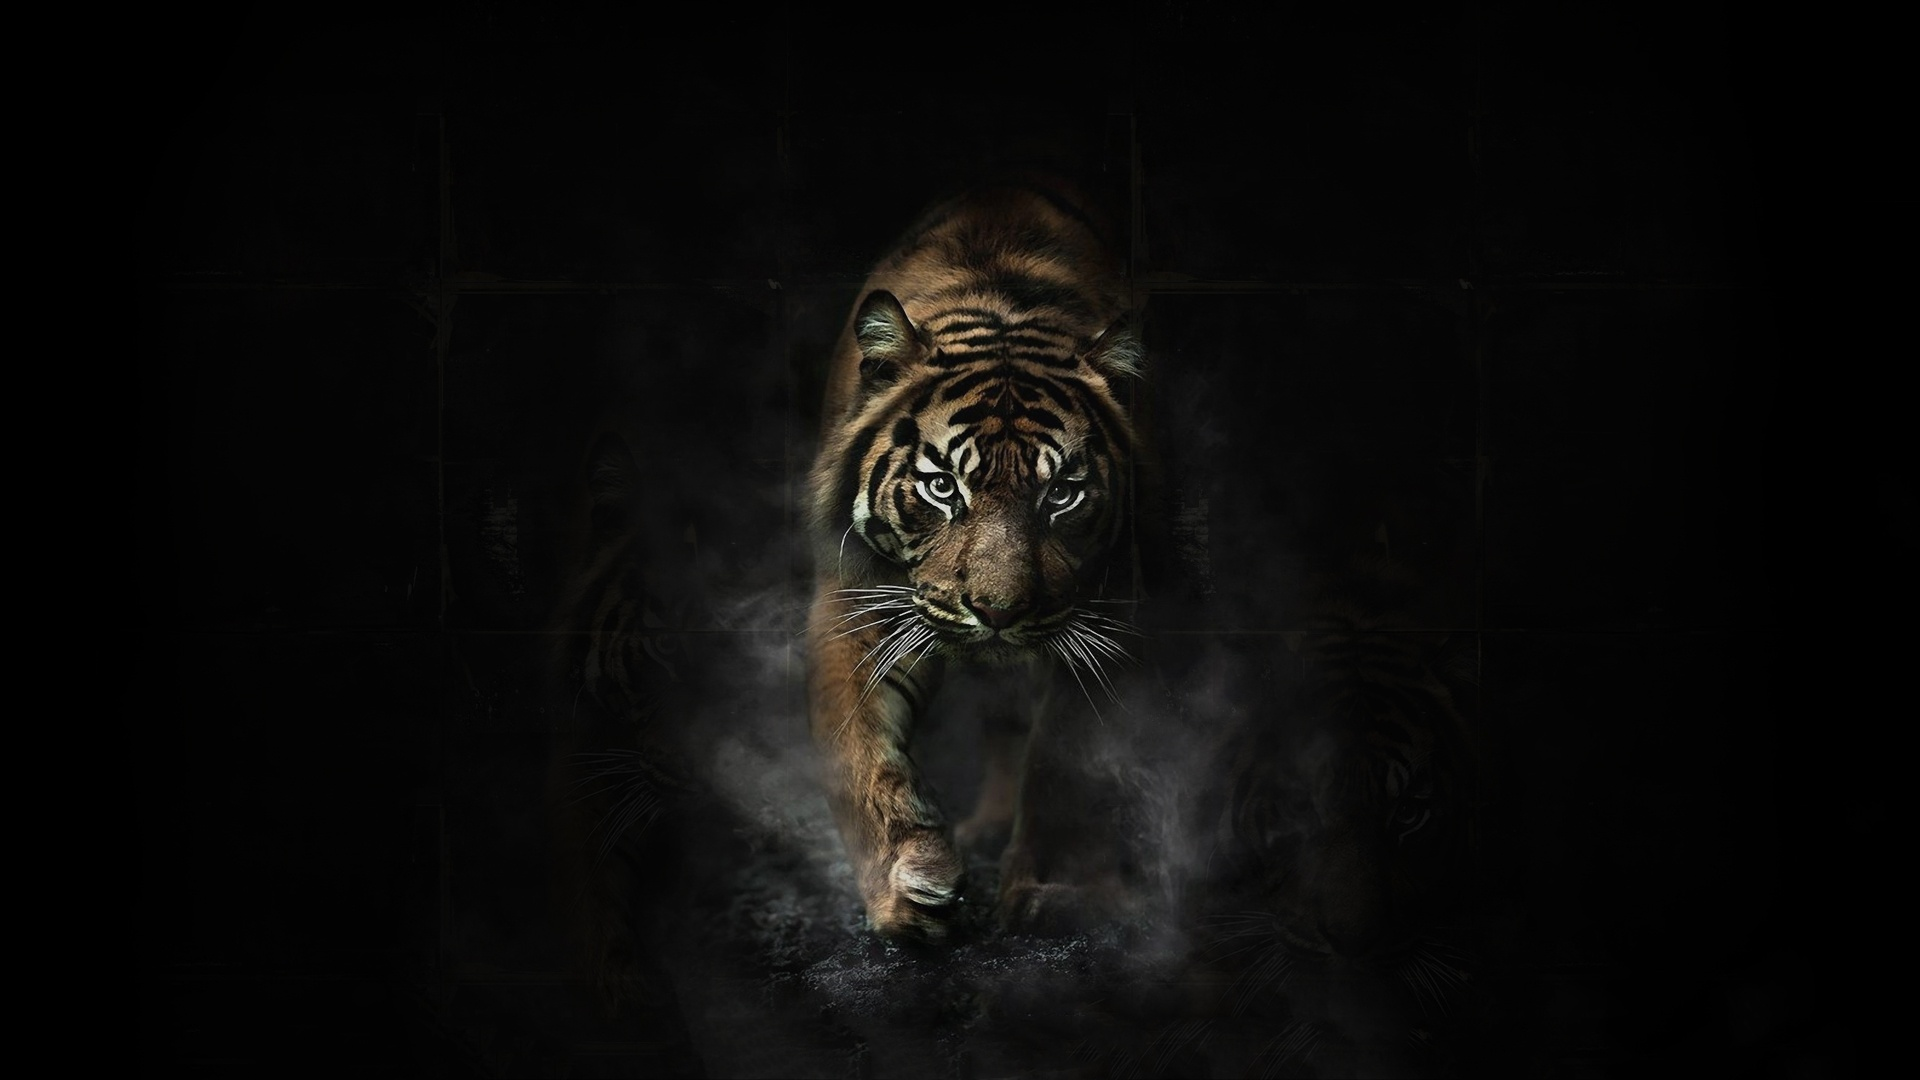 Image wallpapersxl angry tiger hd 236107 1920x1080g animal wallpapersxl angry tiger hd 236107 1920x1080g thecheapjerseys Image collections